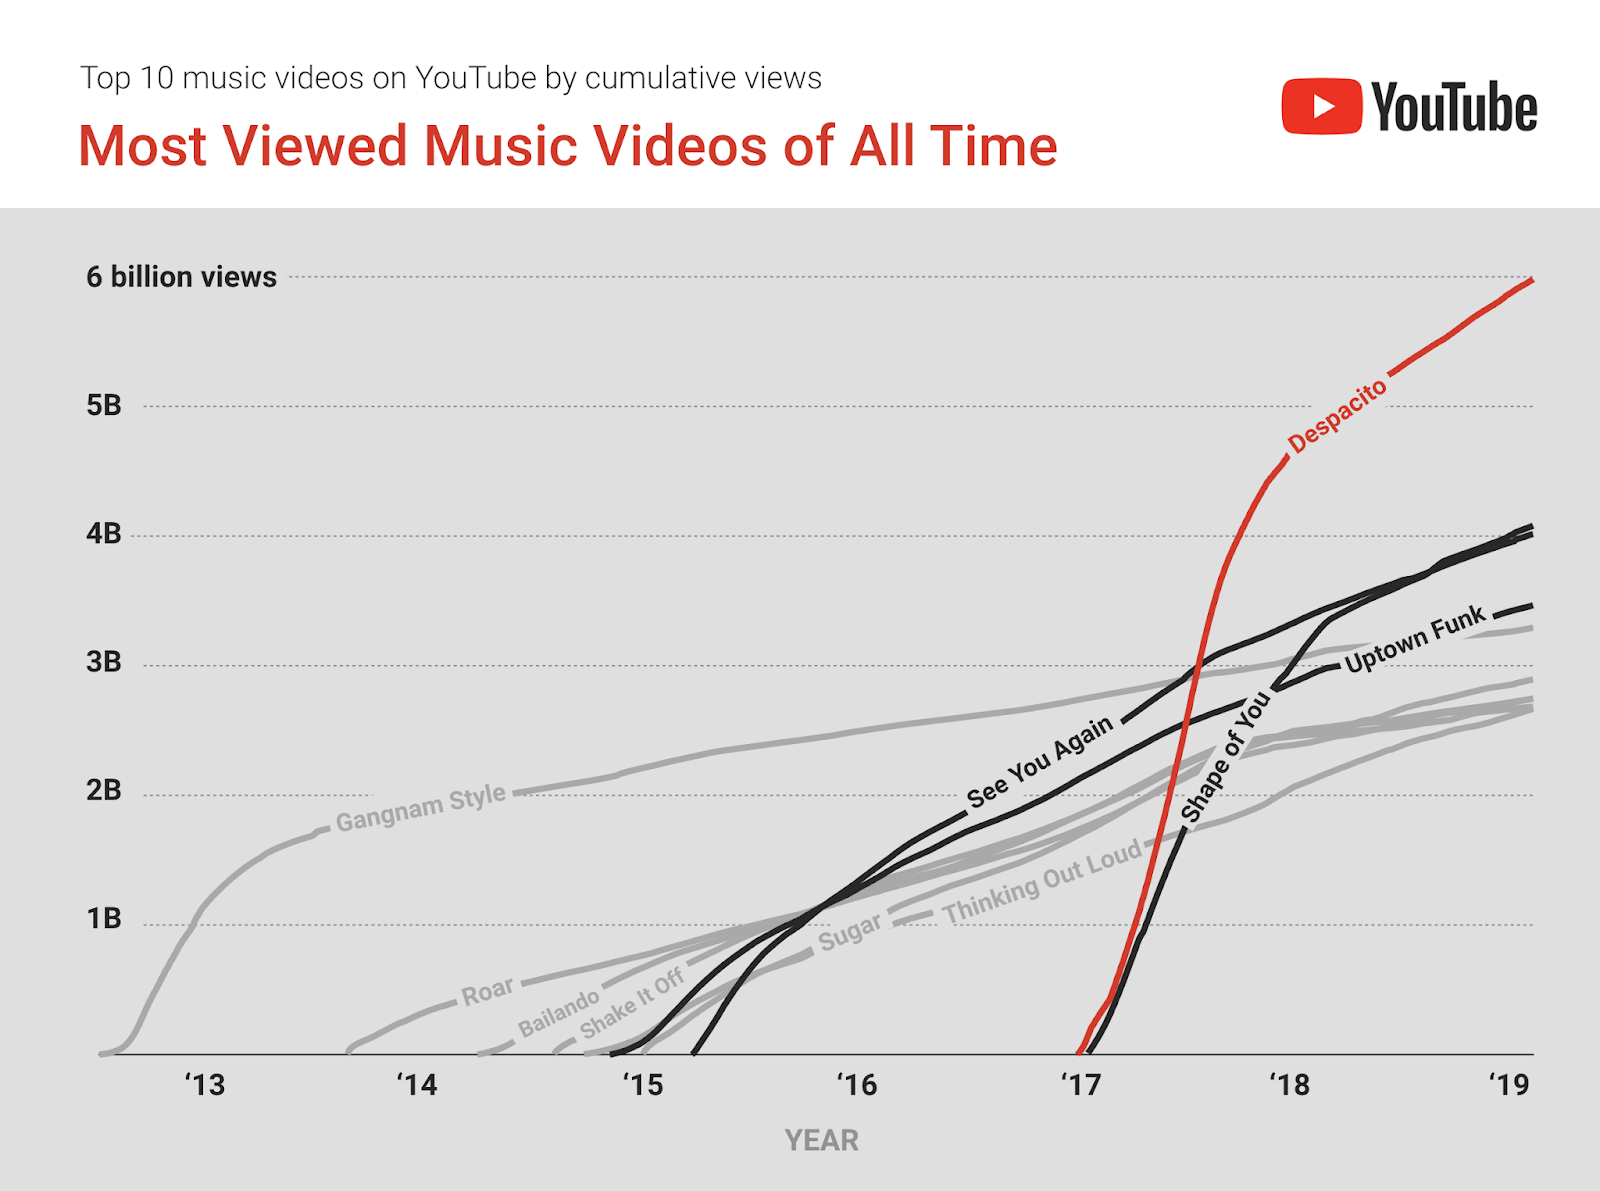 YouTube_Most Viewed Music Videos of All Time